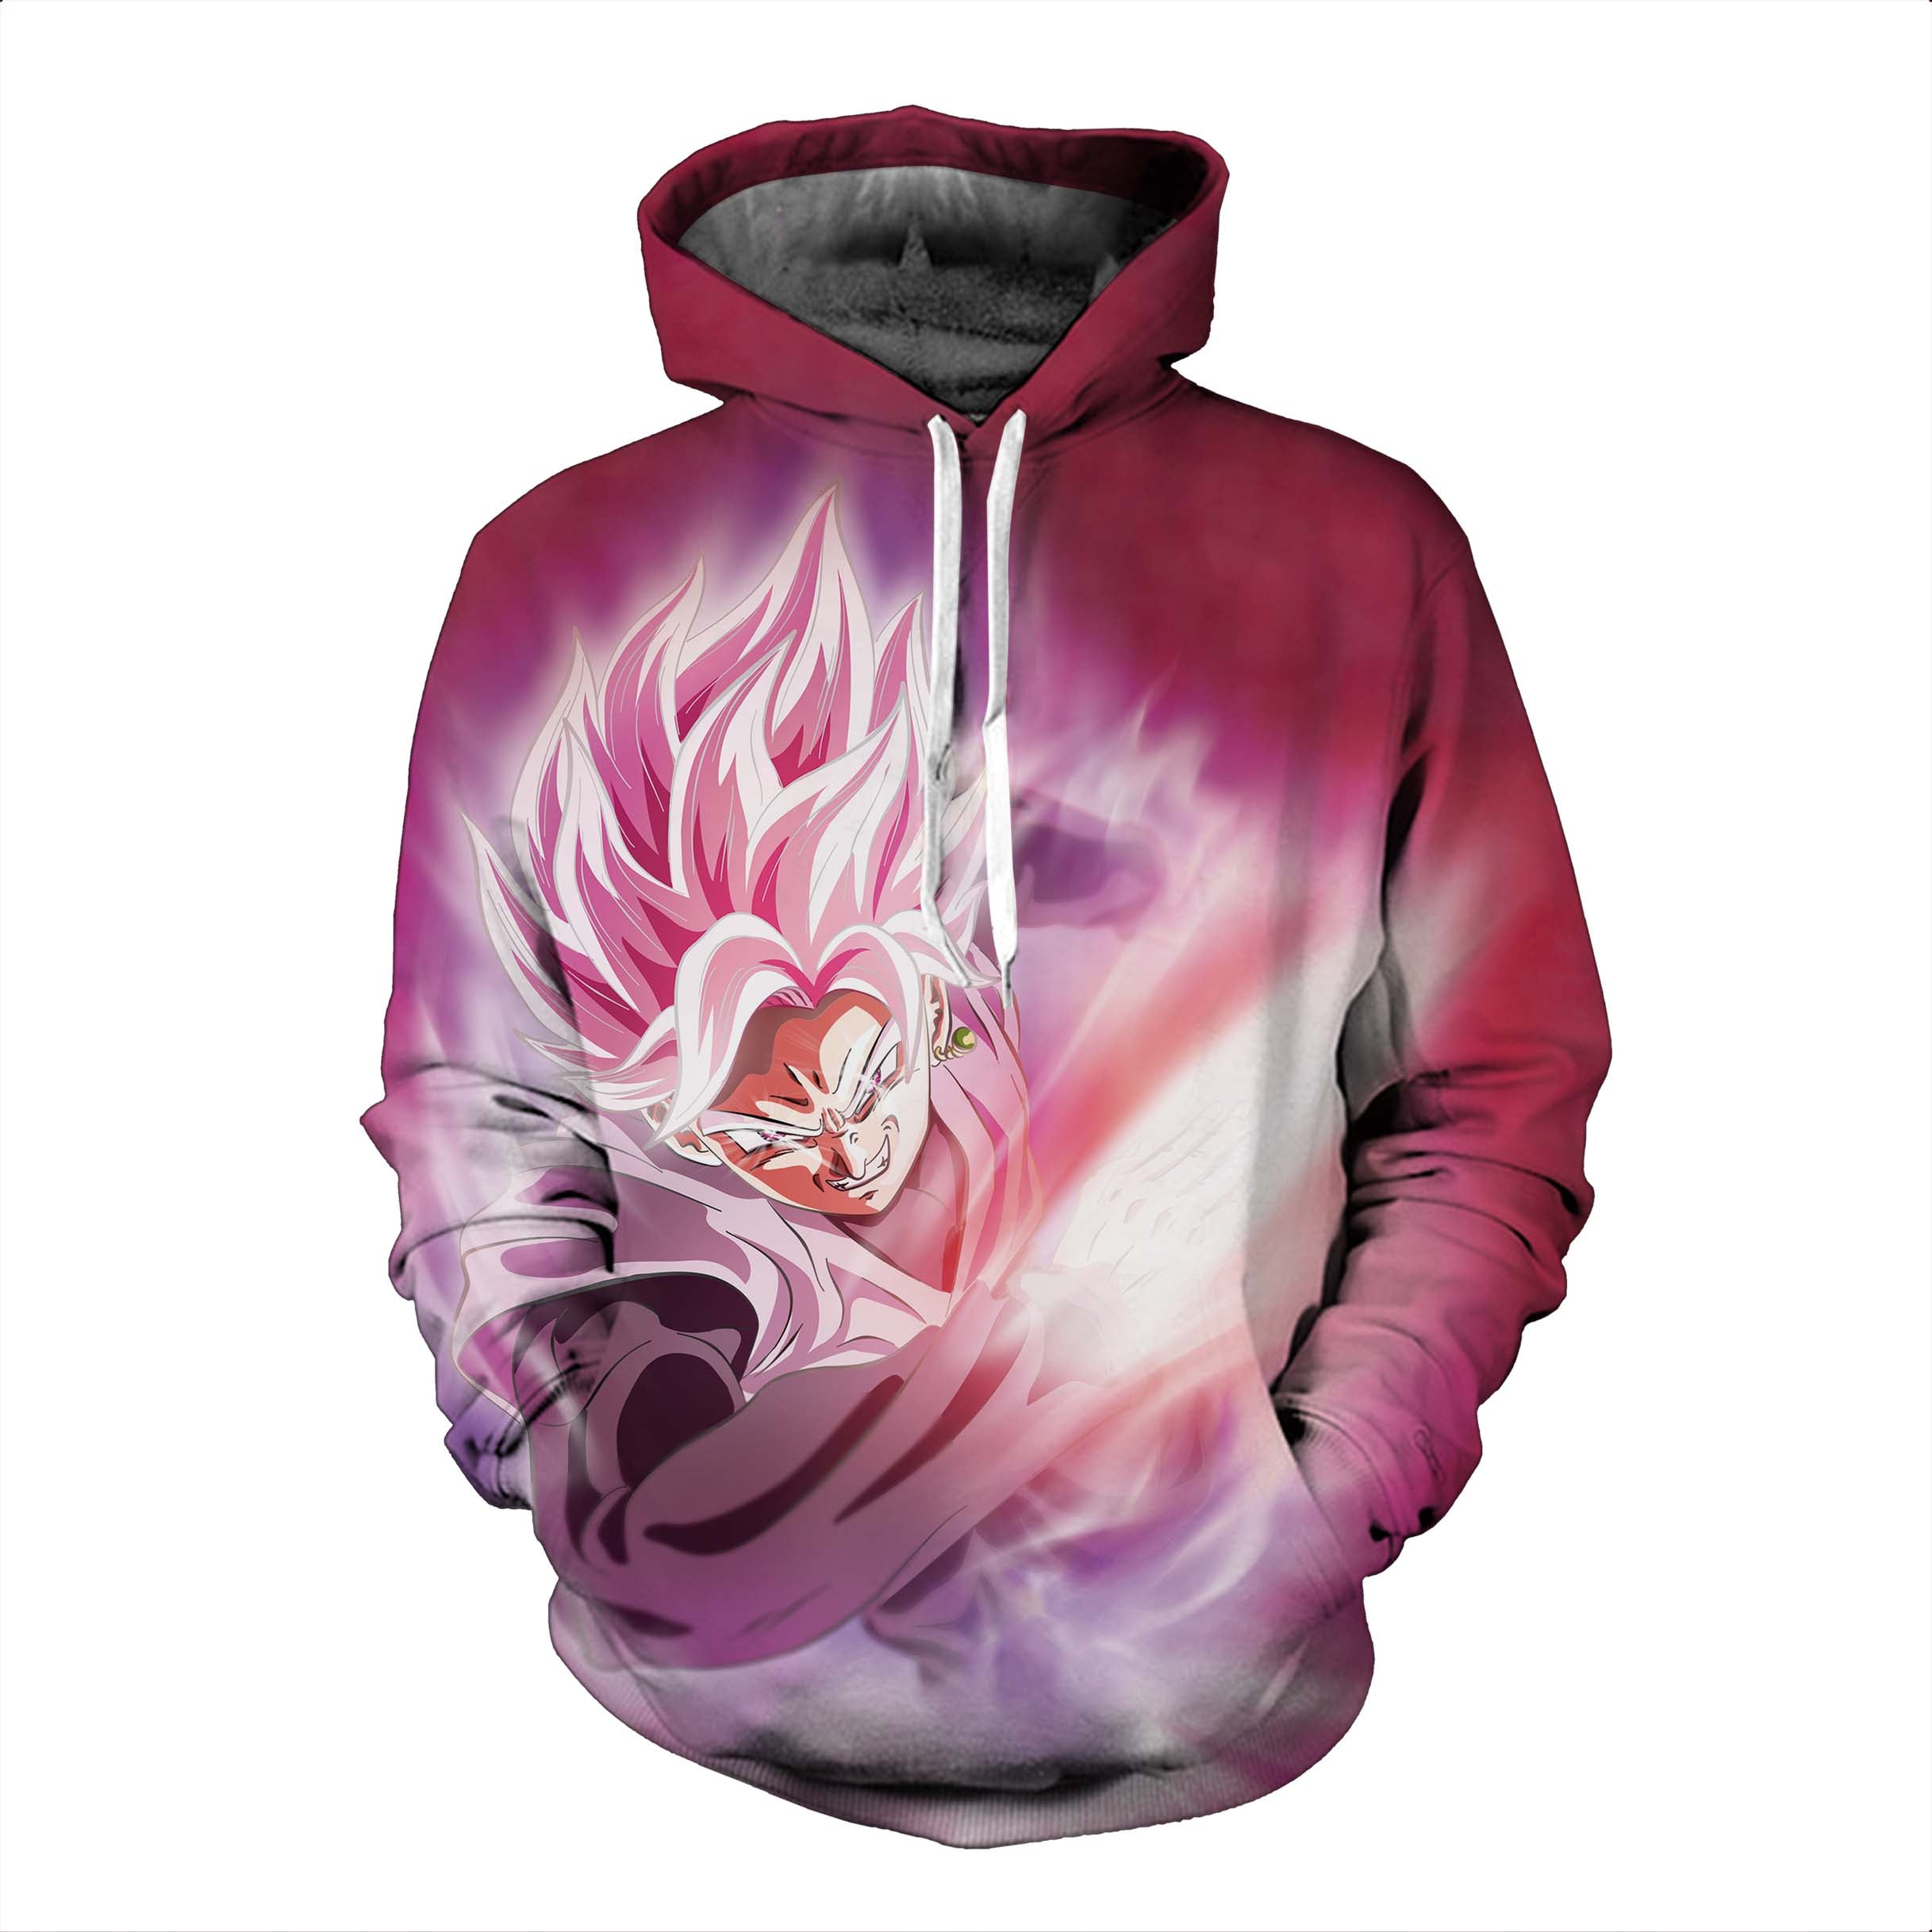 Dragon Ball Hoodies, 3D Clear Print, Best Quality : Design 6569